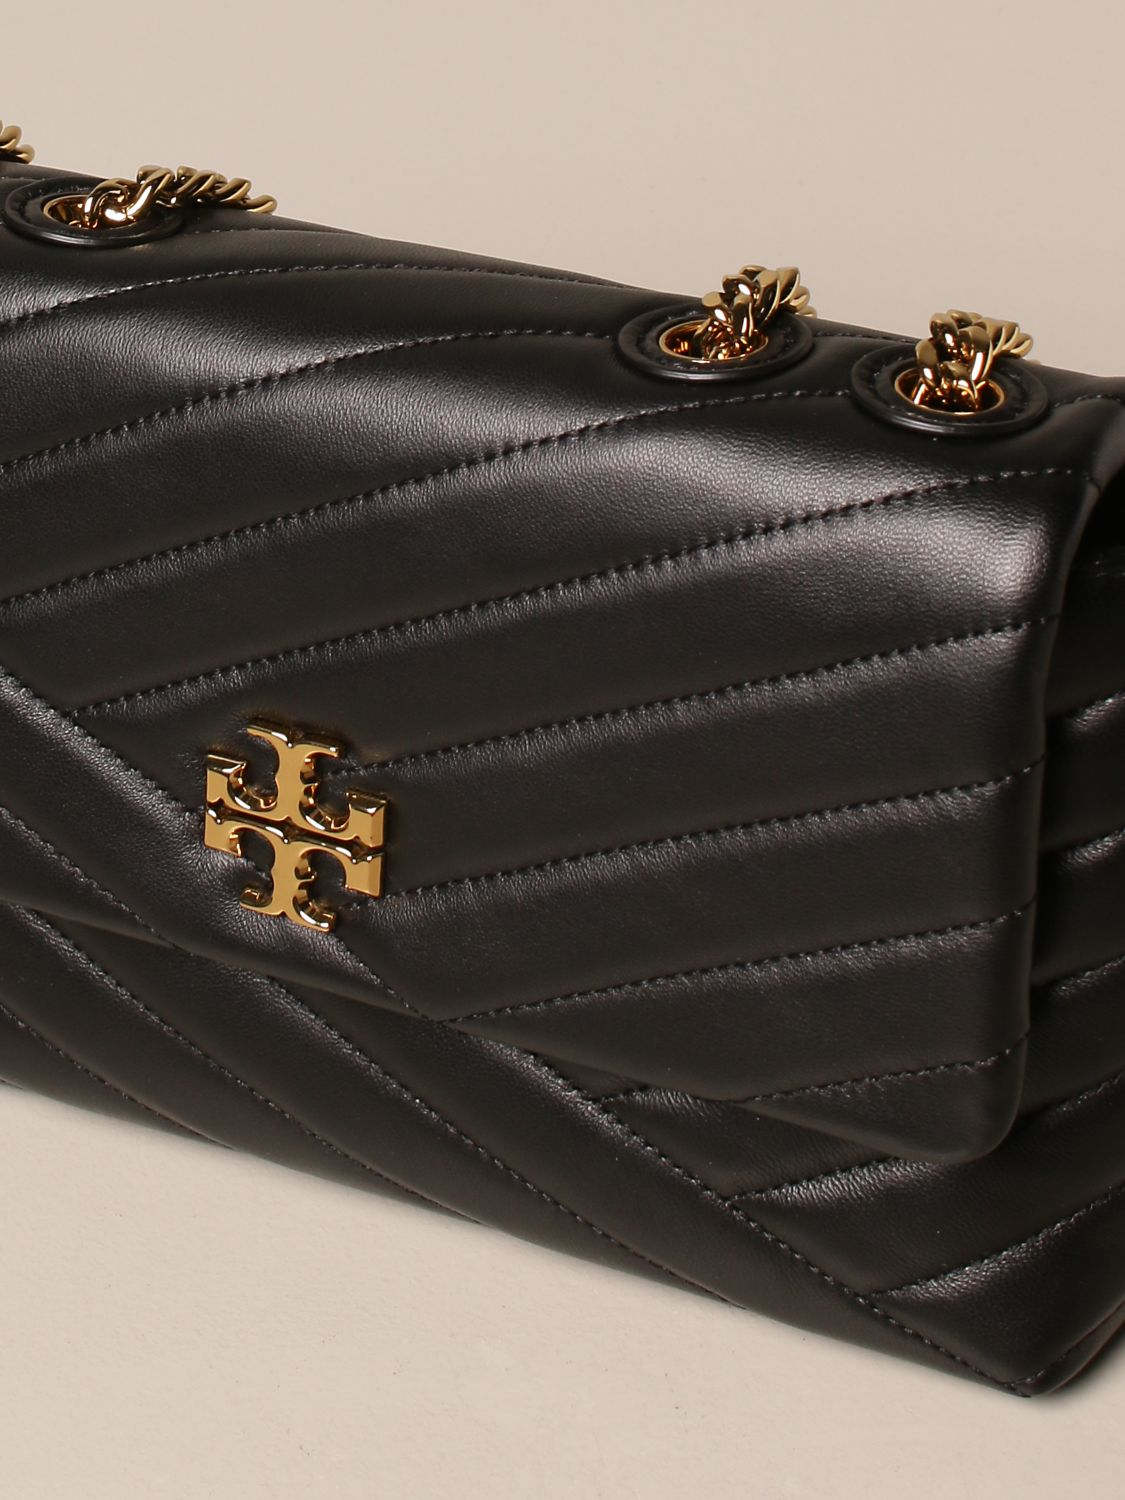 Crossbody bags Tory Burch: Kira Tory Burch bag in quilted leather black 4